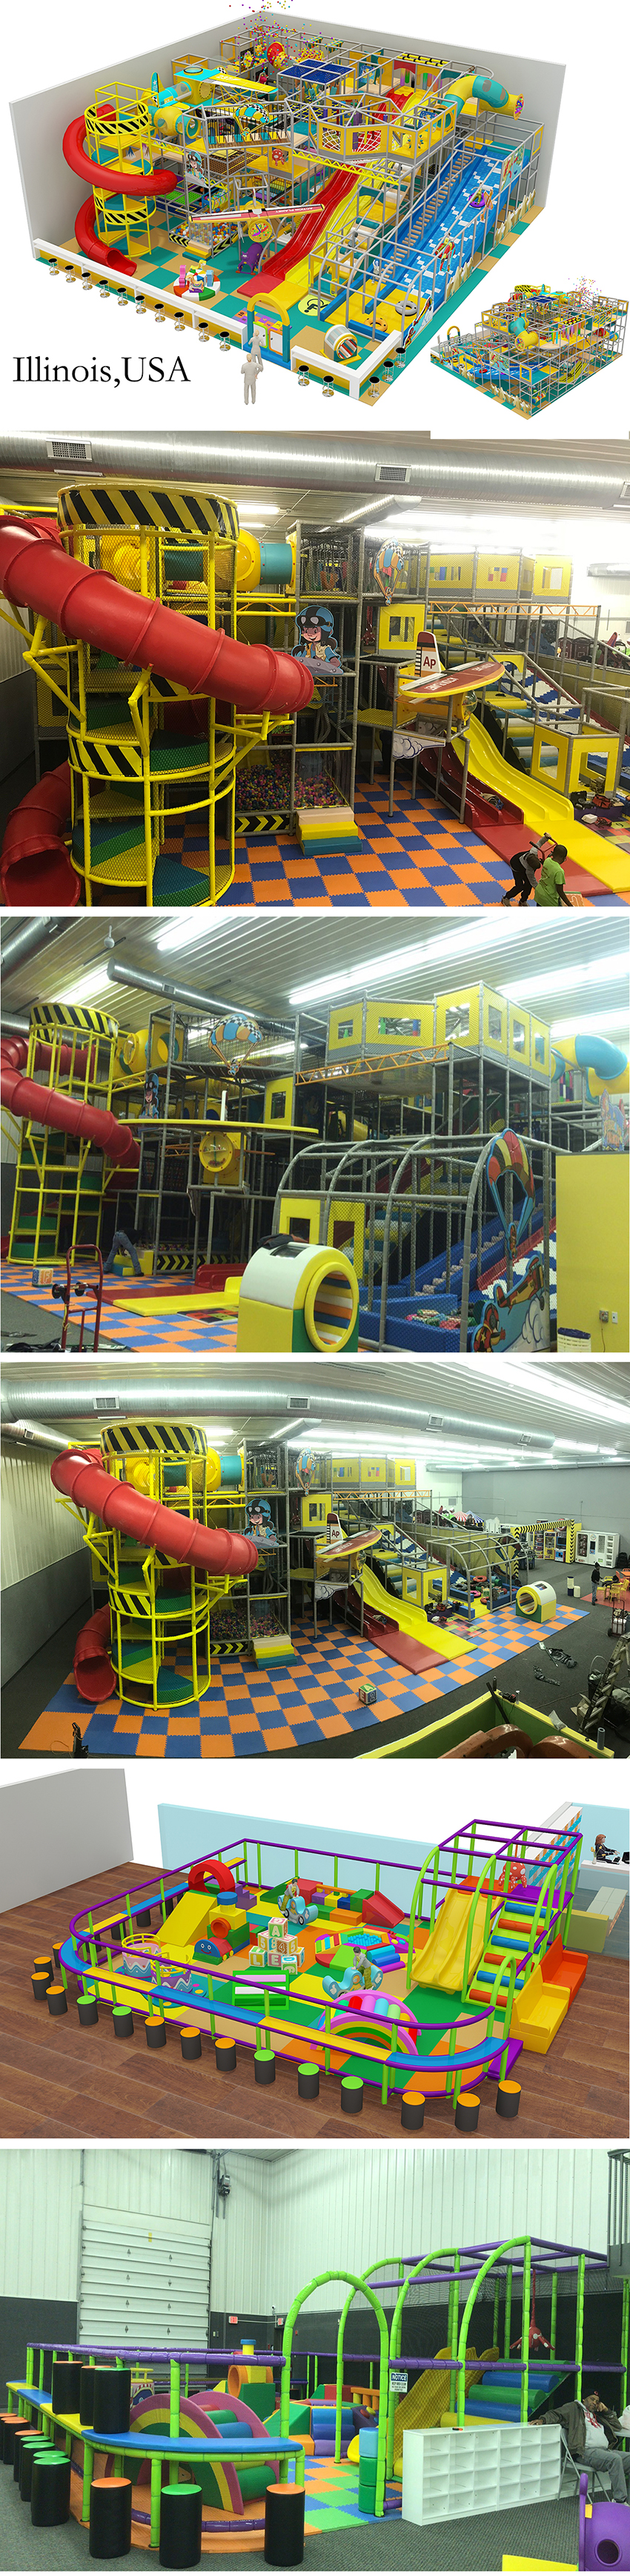 Commercial indoor kids playground